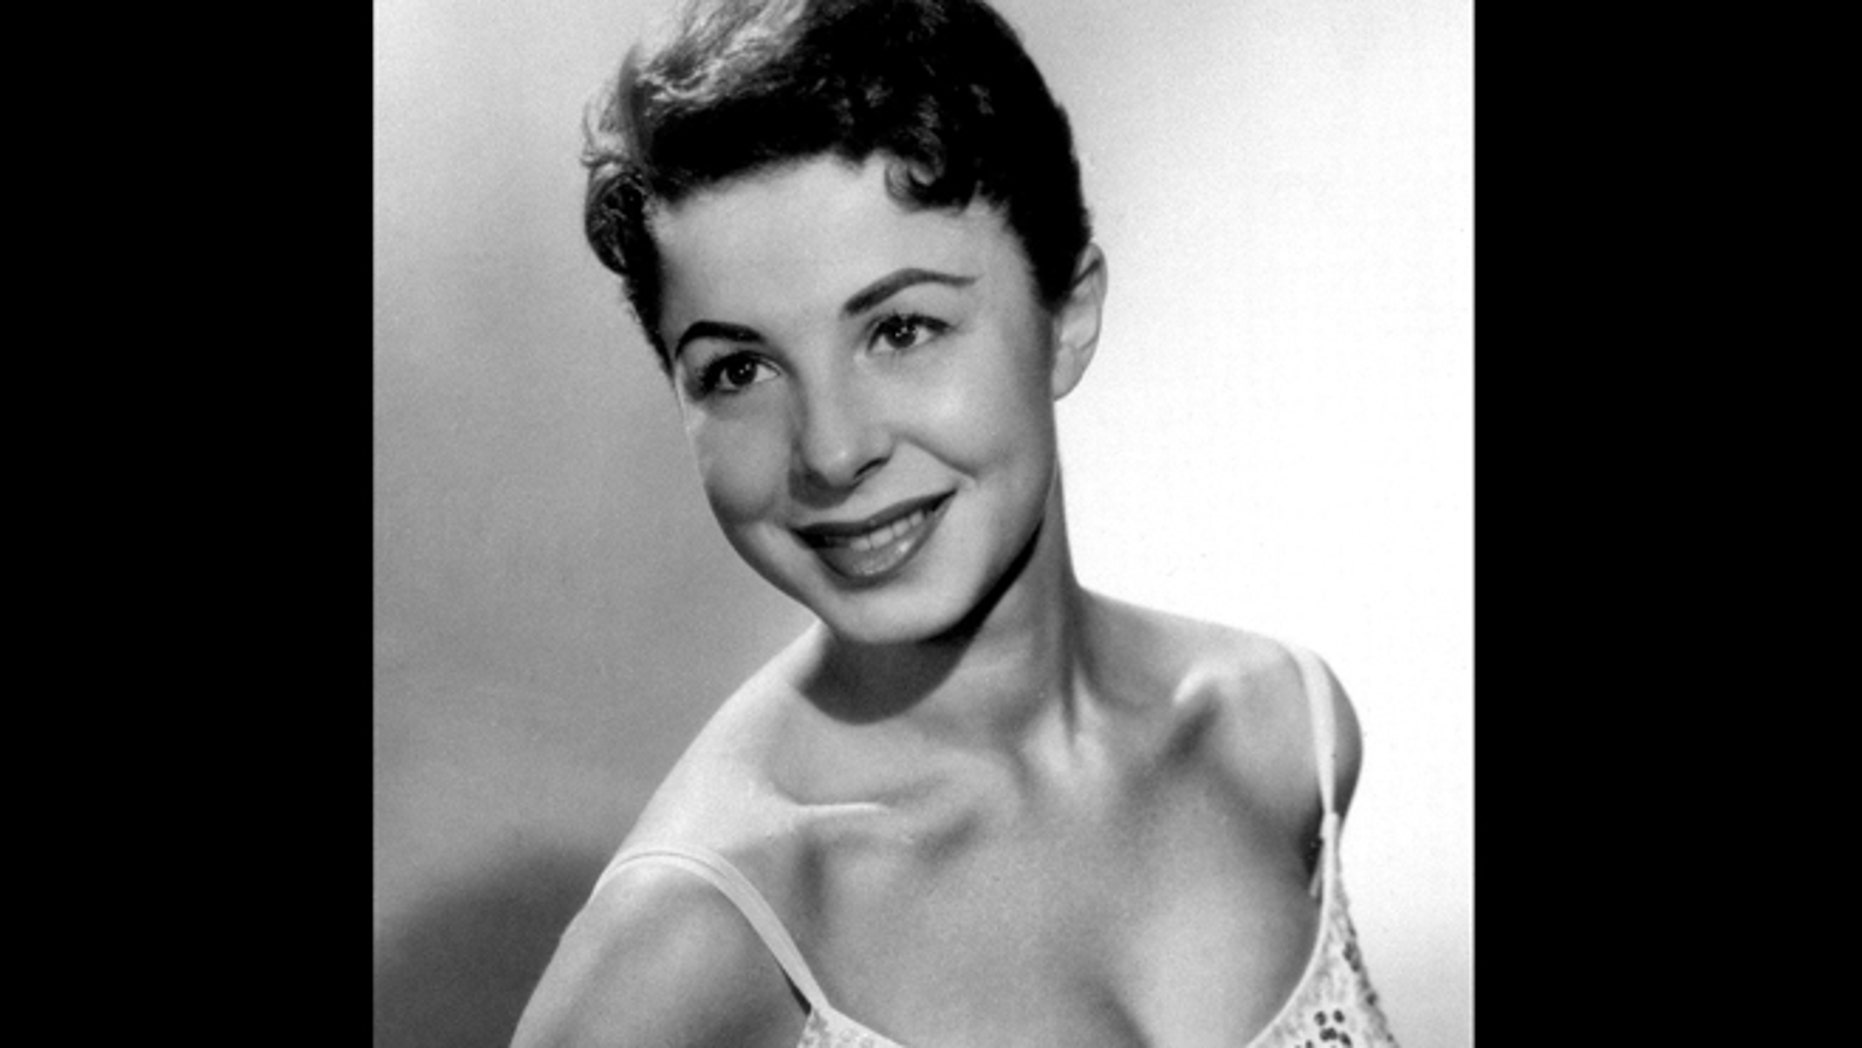 This 1956 file photo shows Eydie Gorme. Gorme, a popular nightclub and television singer as a solo act and as a team with husband Steve Lawrence, has died. She was 84.